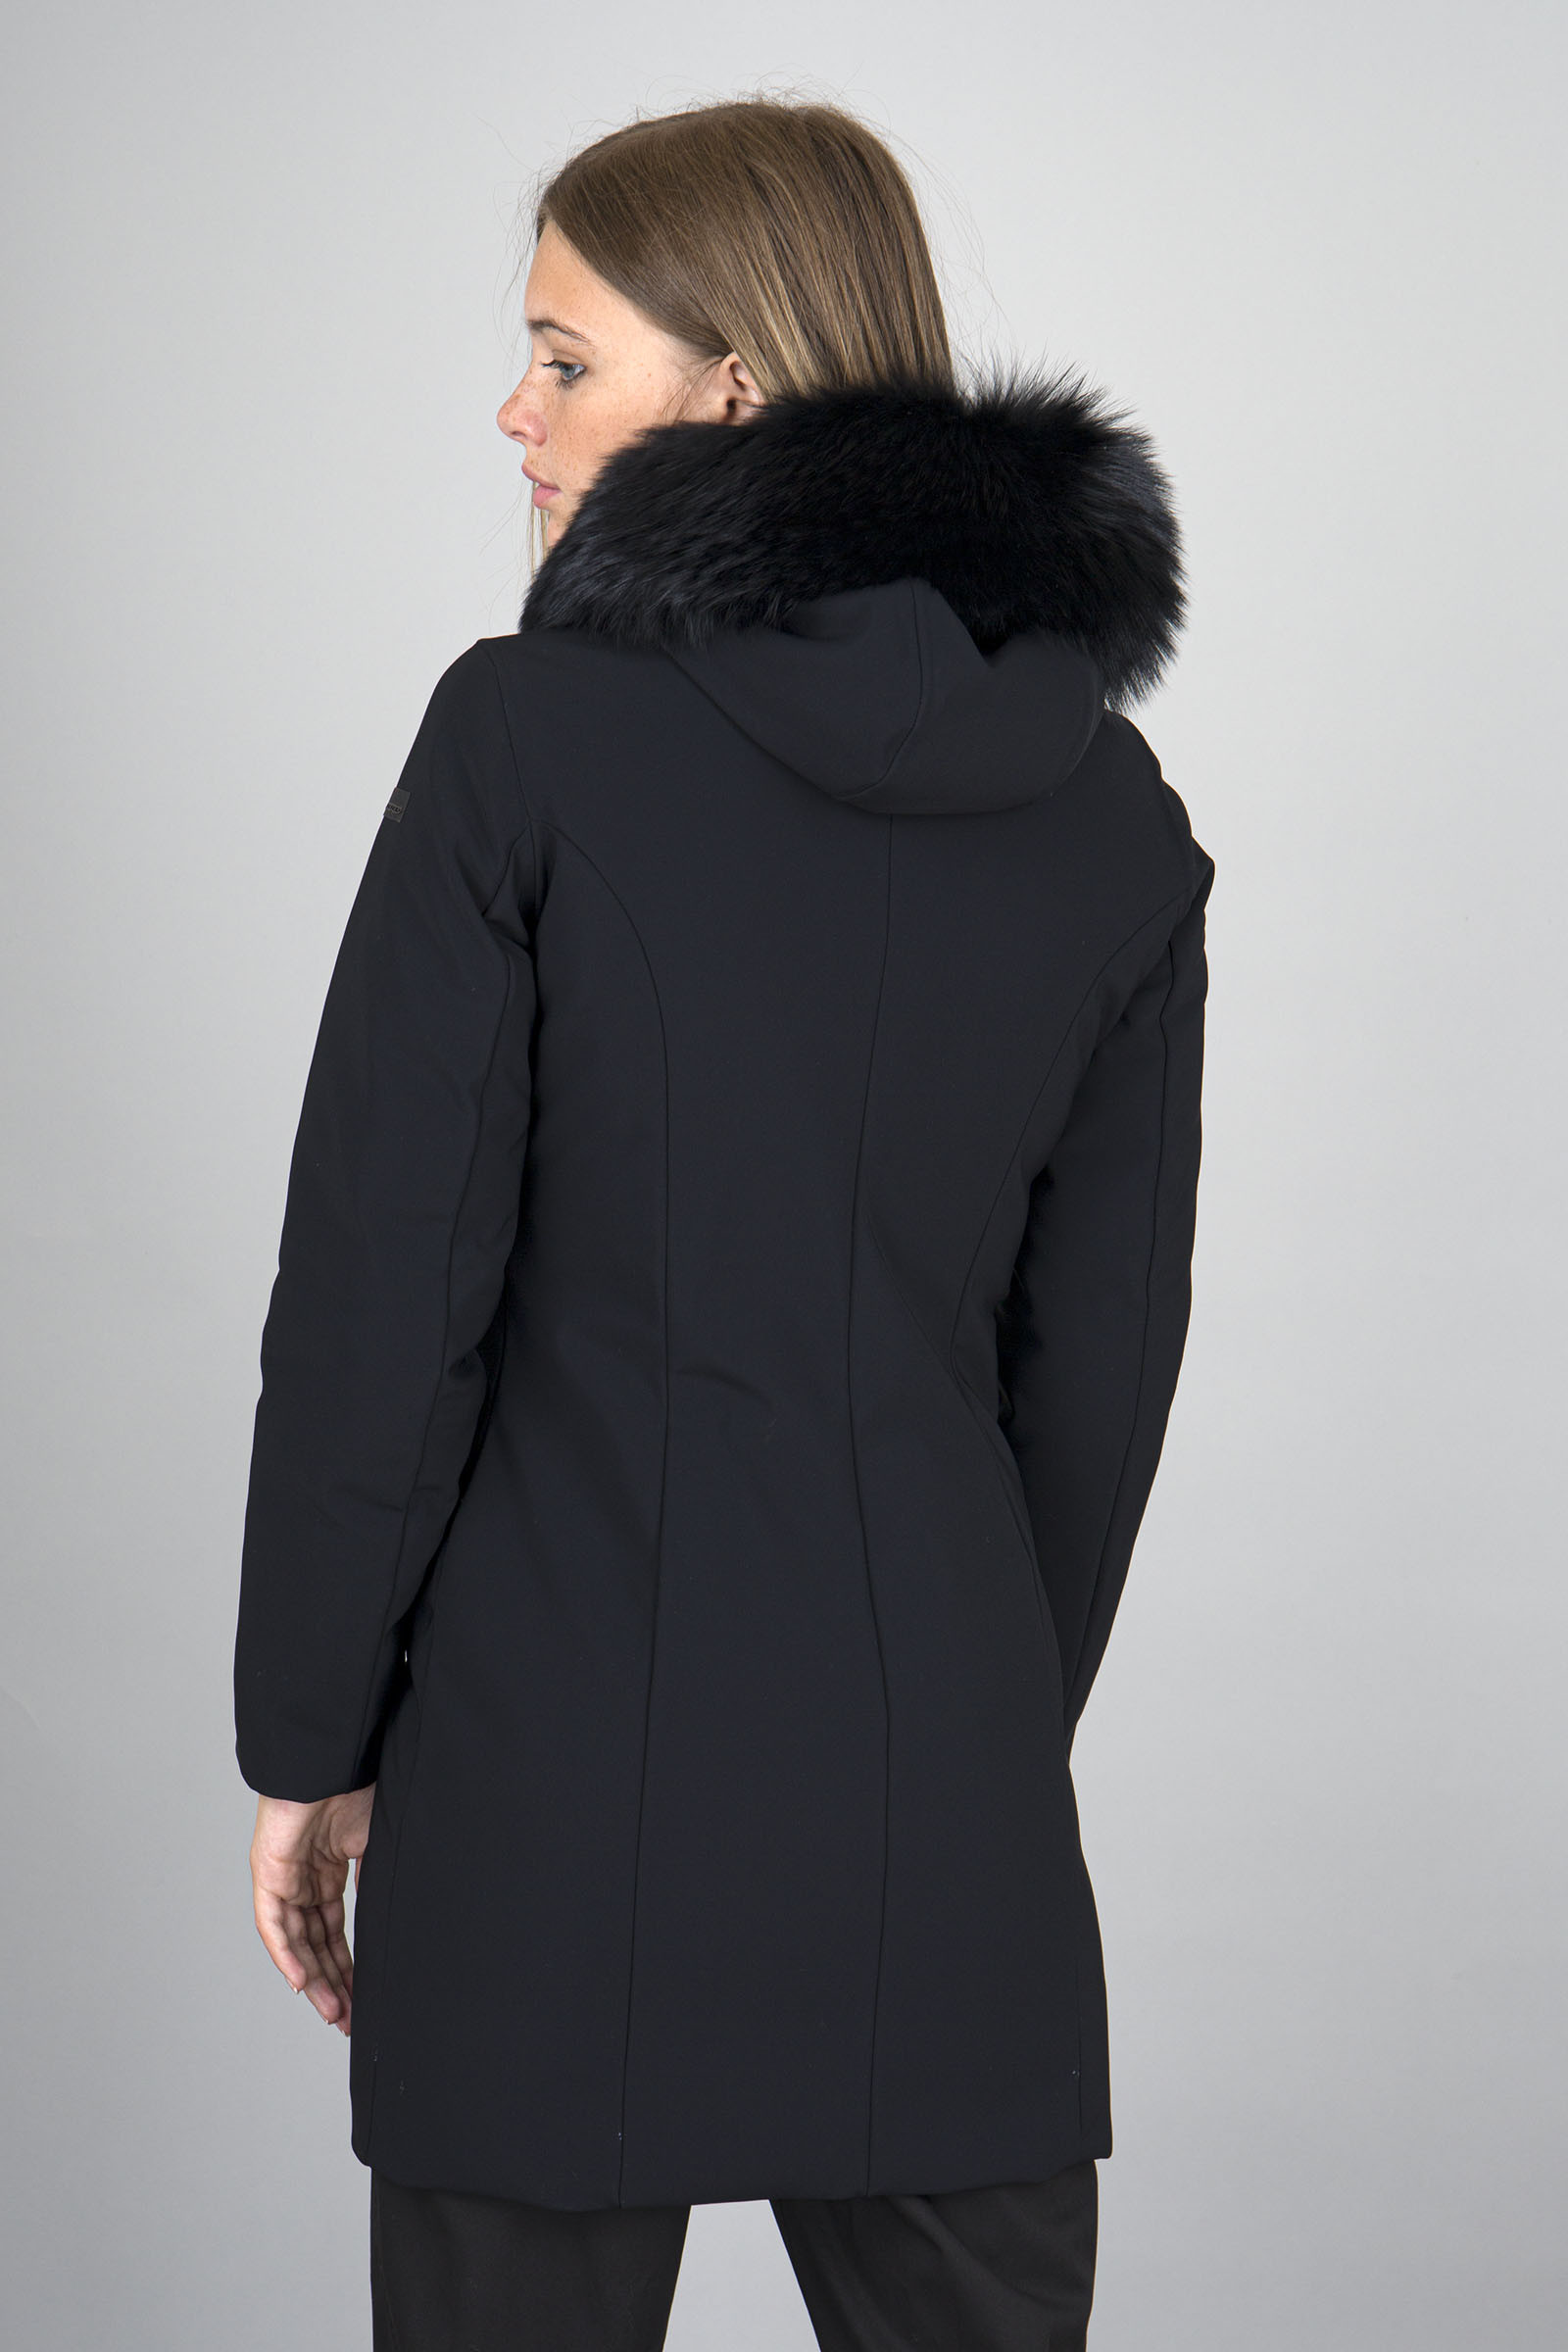 SHOPPING ON LINE RRD PIUMINO WINTER LONG LADY FUR NEW COLLECTION  WOMEN'S FALL/WINTER 2022